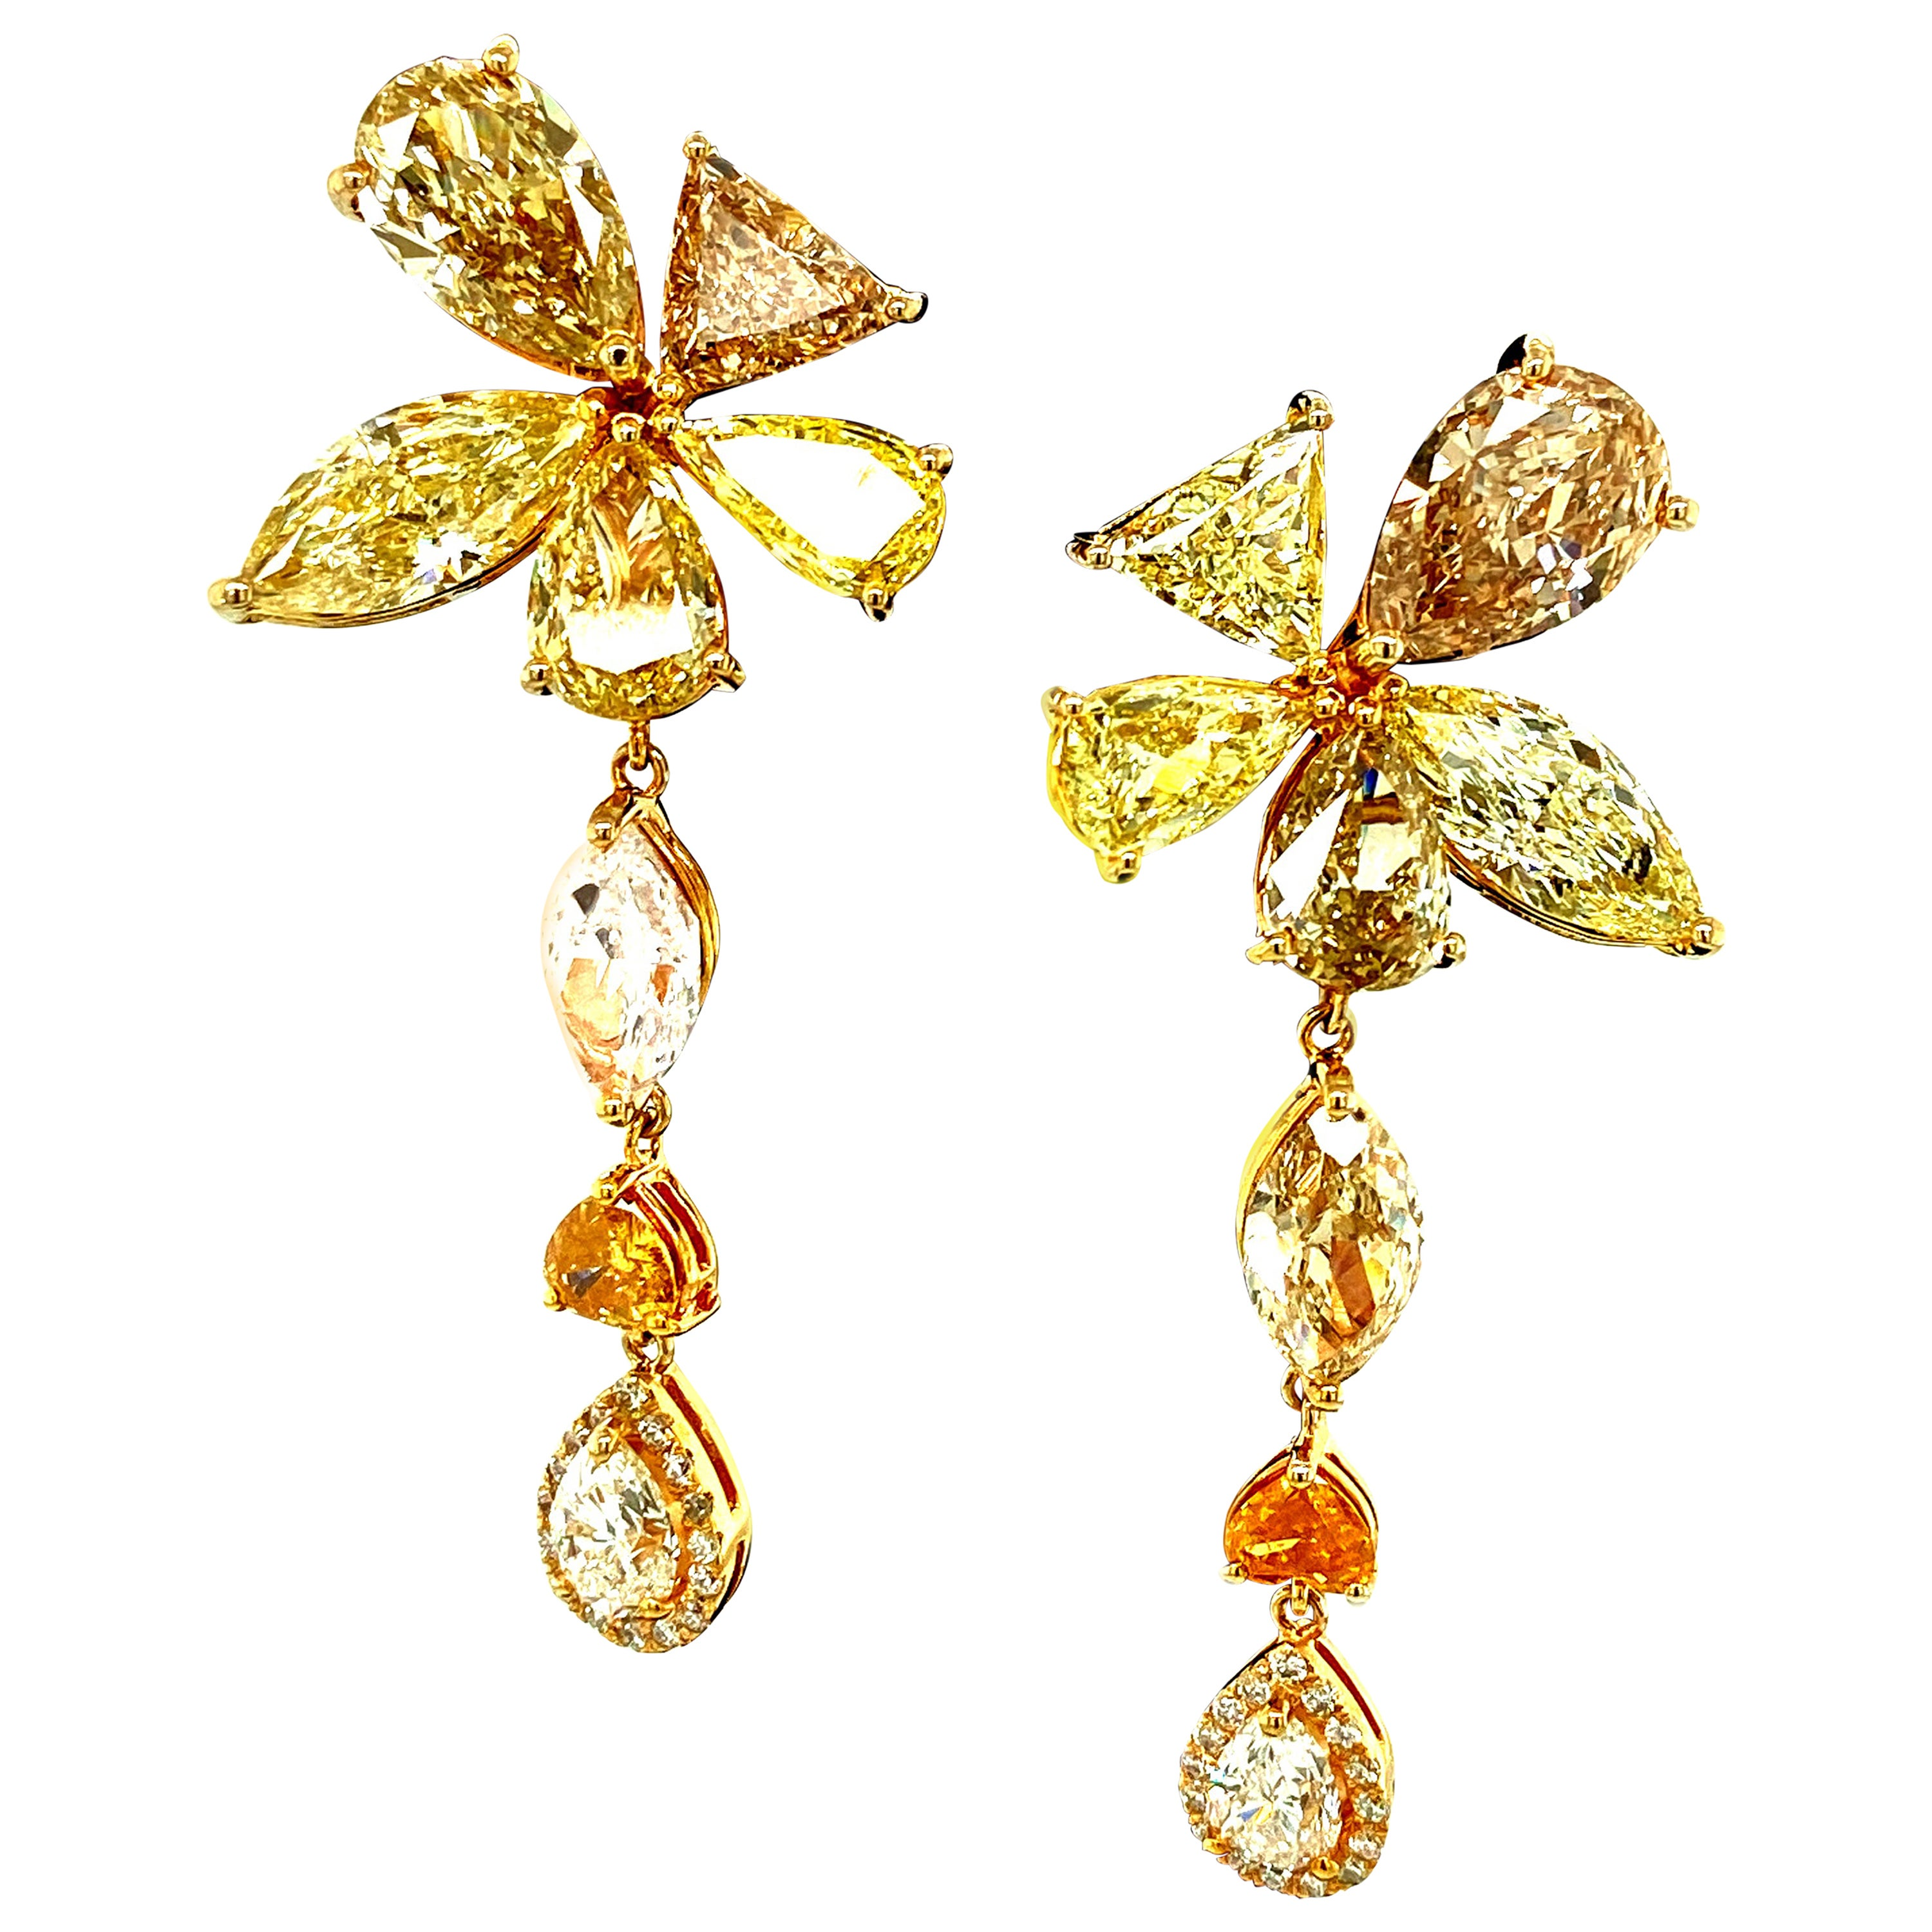 14.45 Carat Natural Fancy Colored Diamonds and White Diamond Gold Earrings